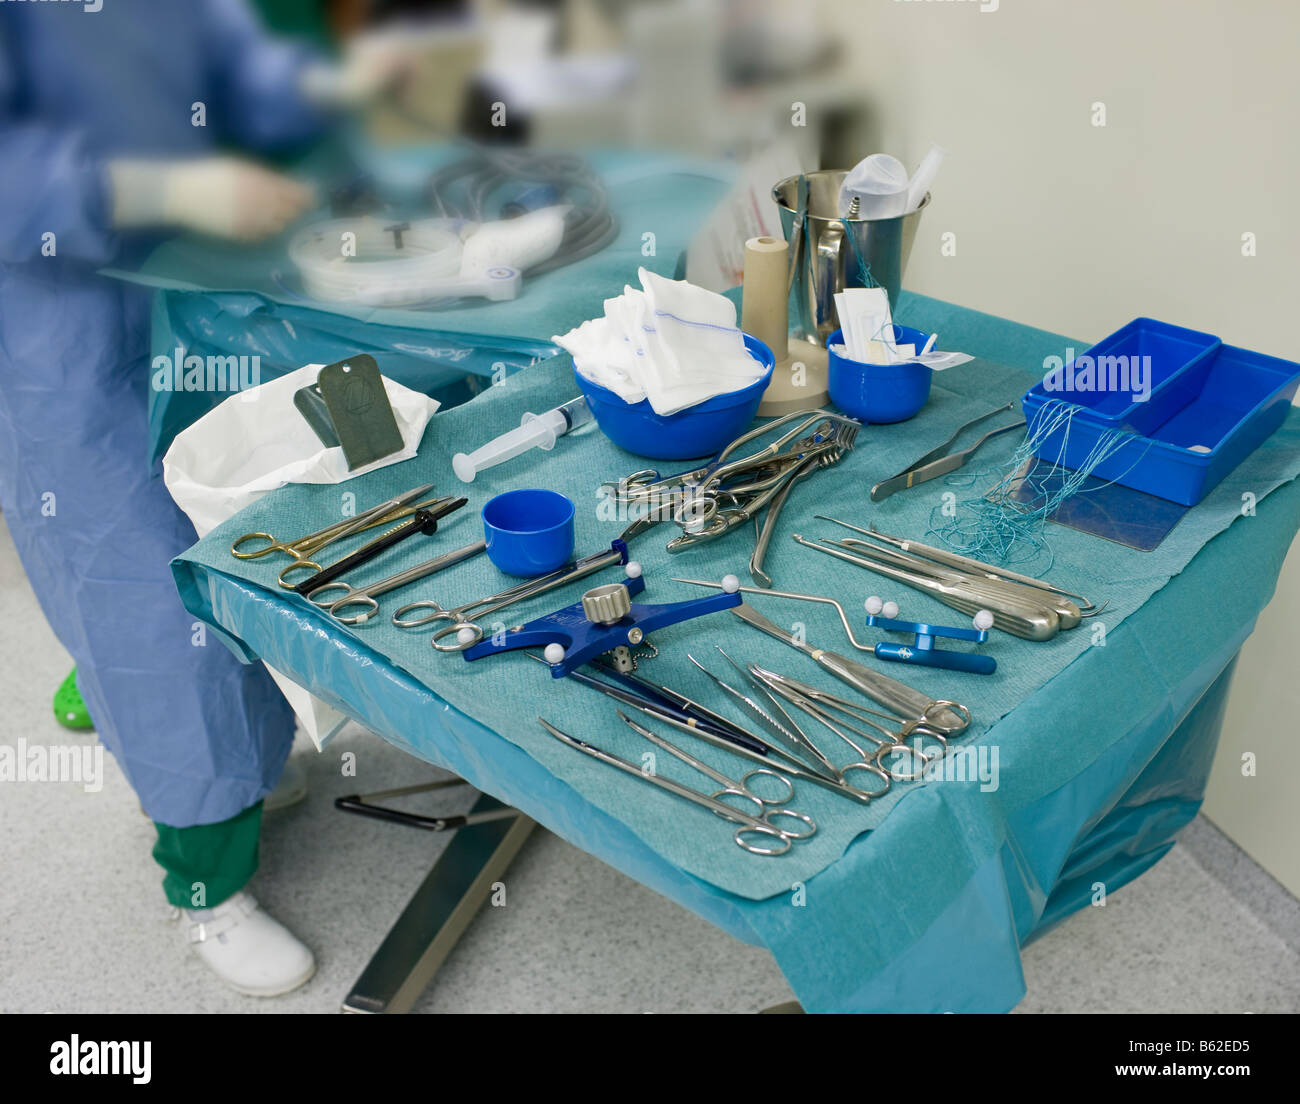 Medical instruments used during brain surgery to remove benign tumor, Reykjavik Iceland - Stock Image